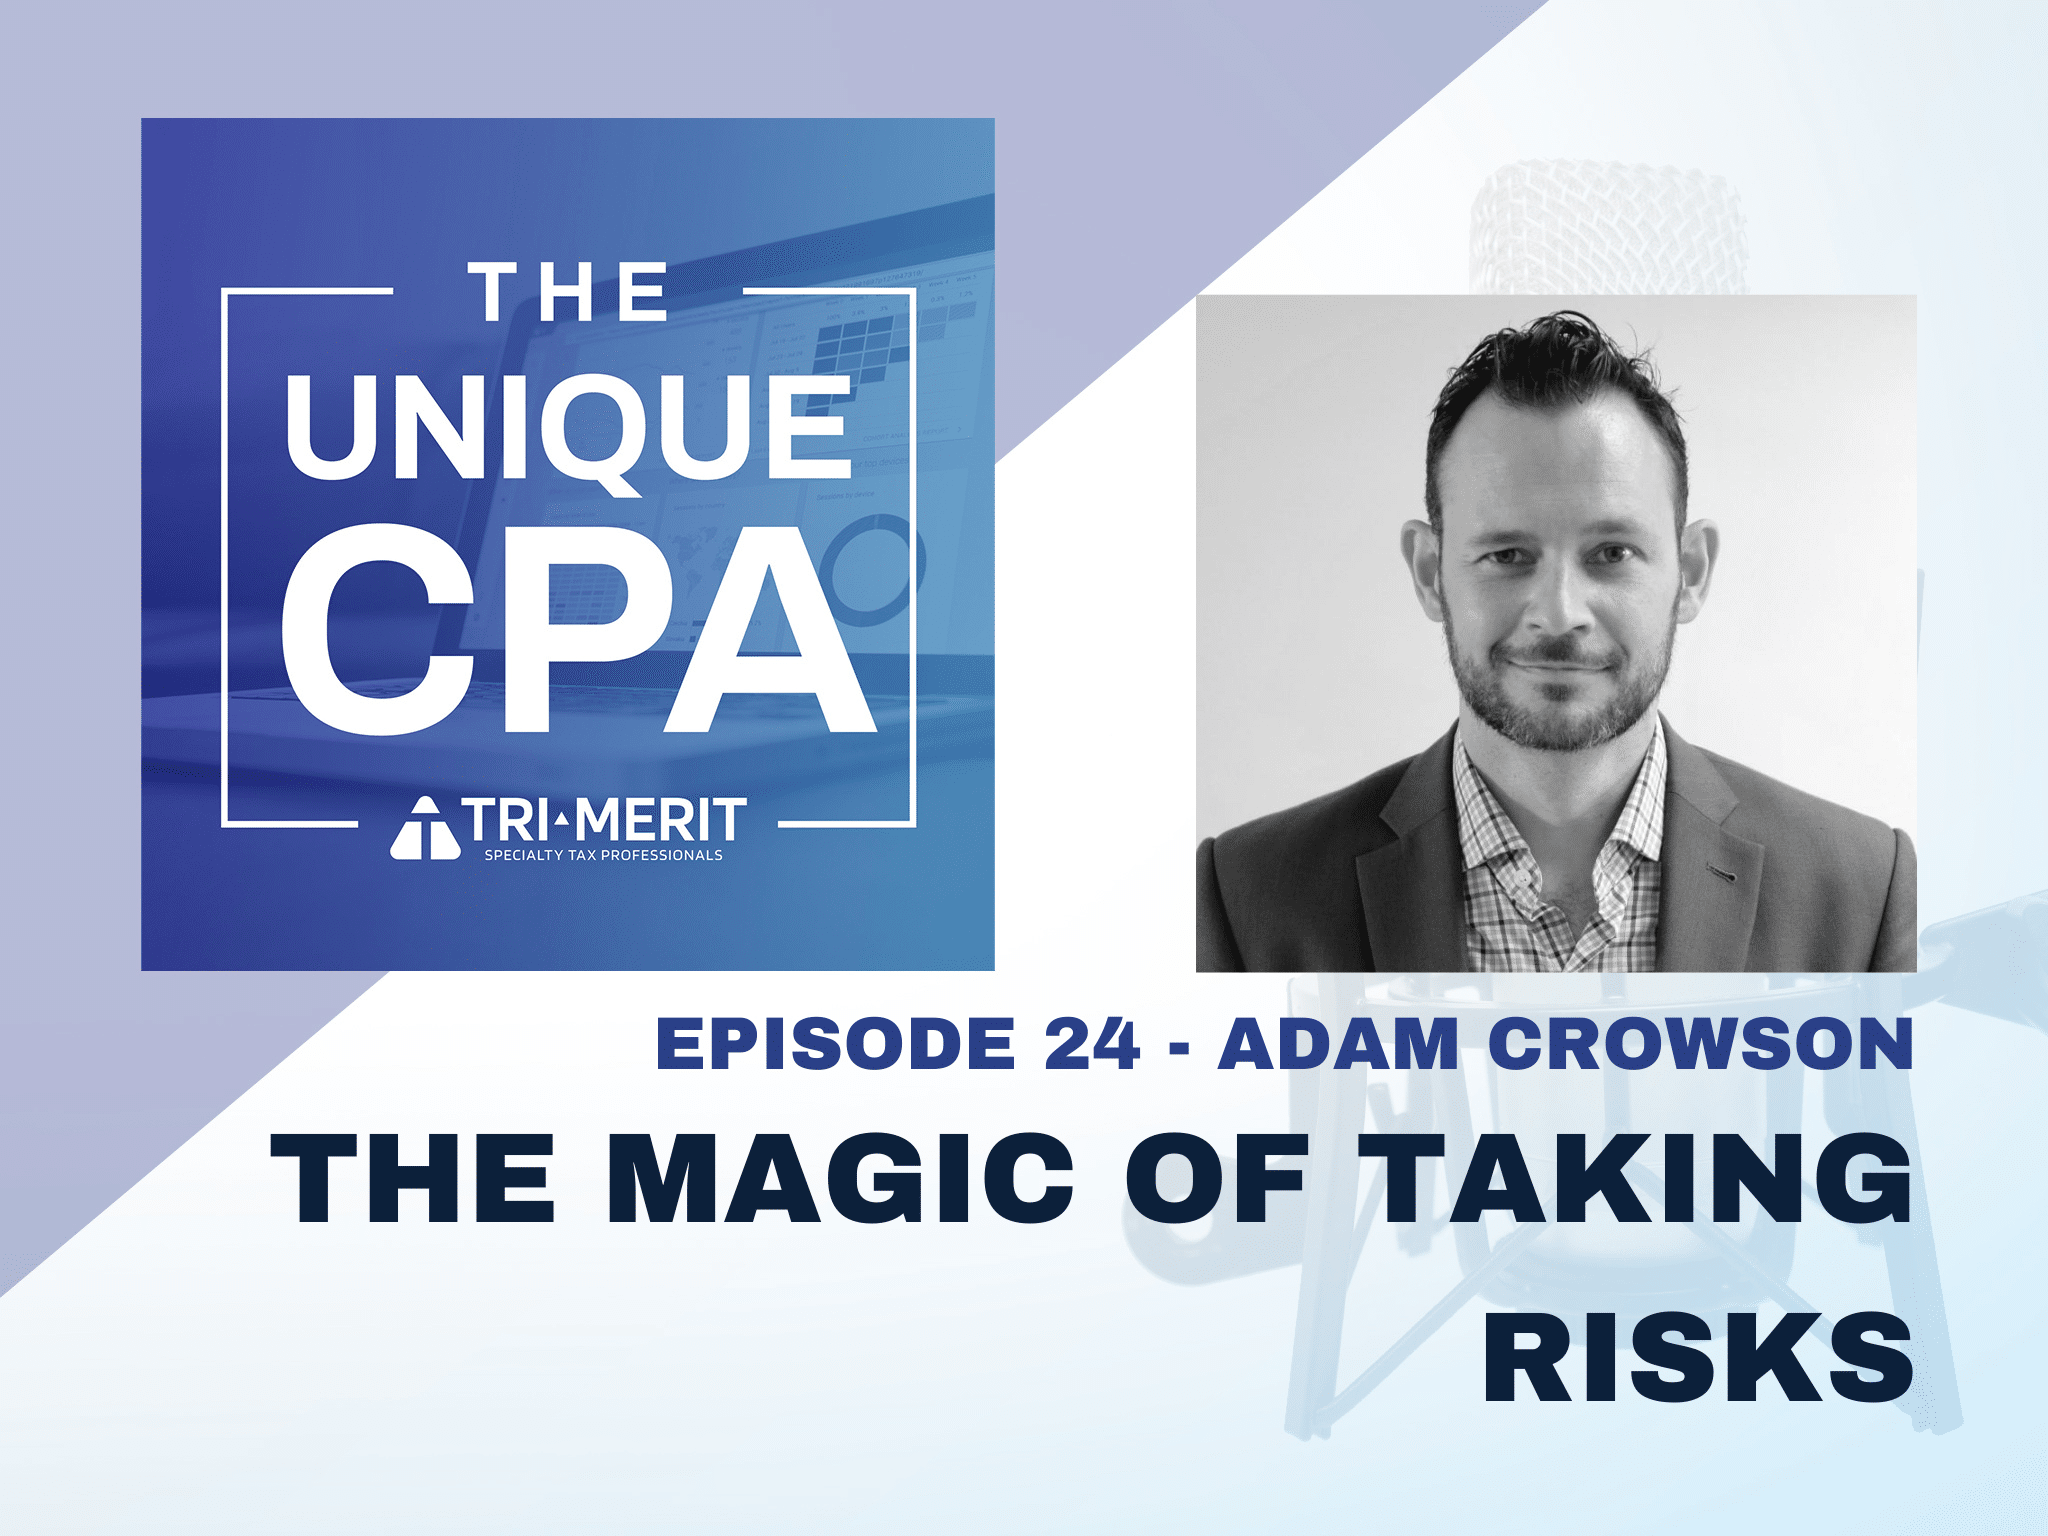 The Unique CPA Feature Image Ep 24 Adam Crowson - The Magic of Taking Risks - Tri-Merit